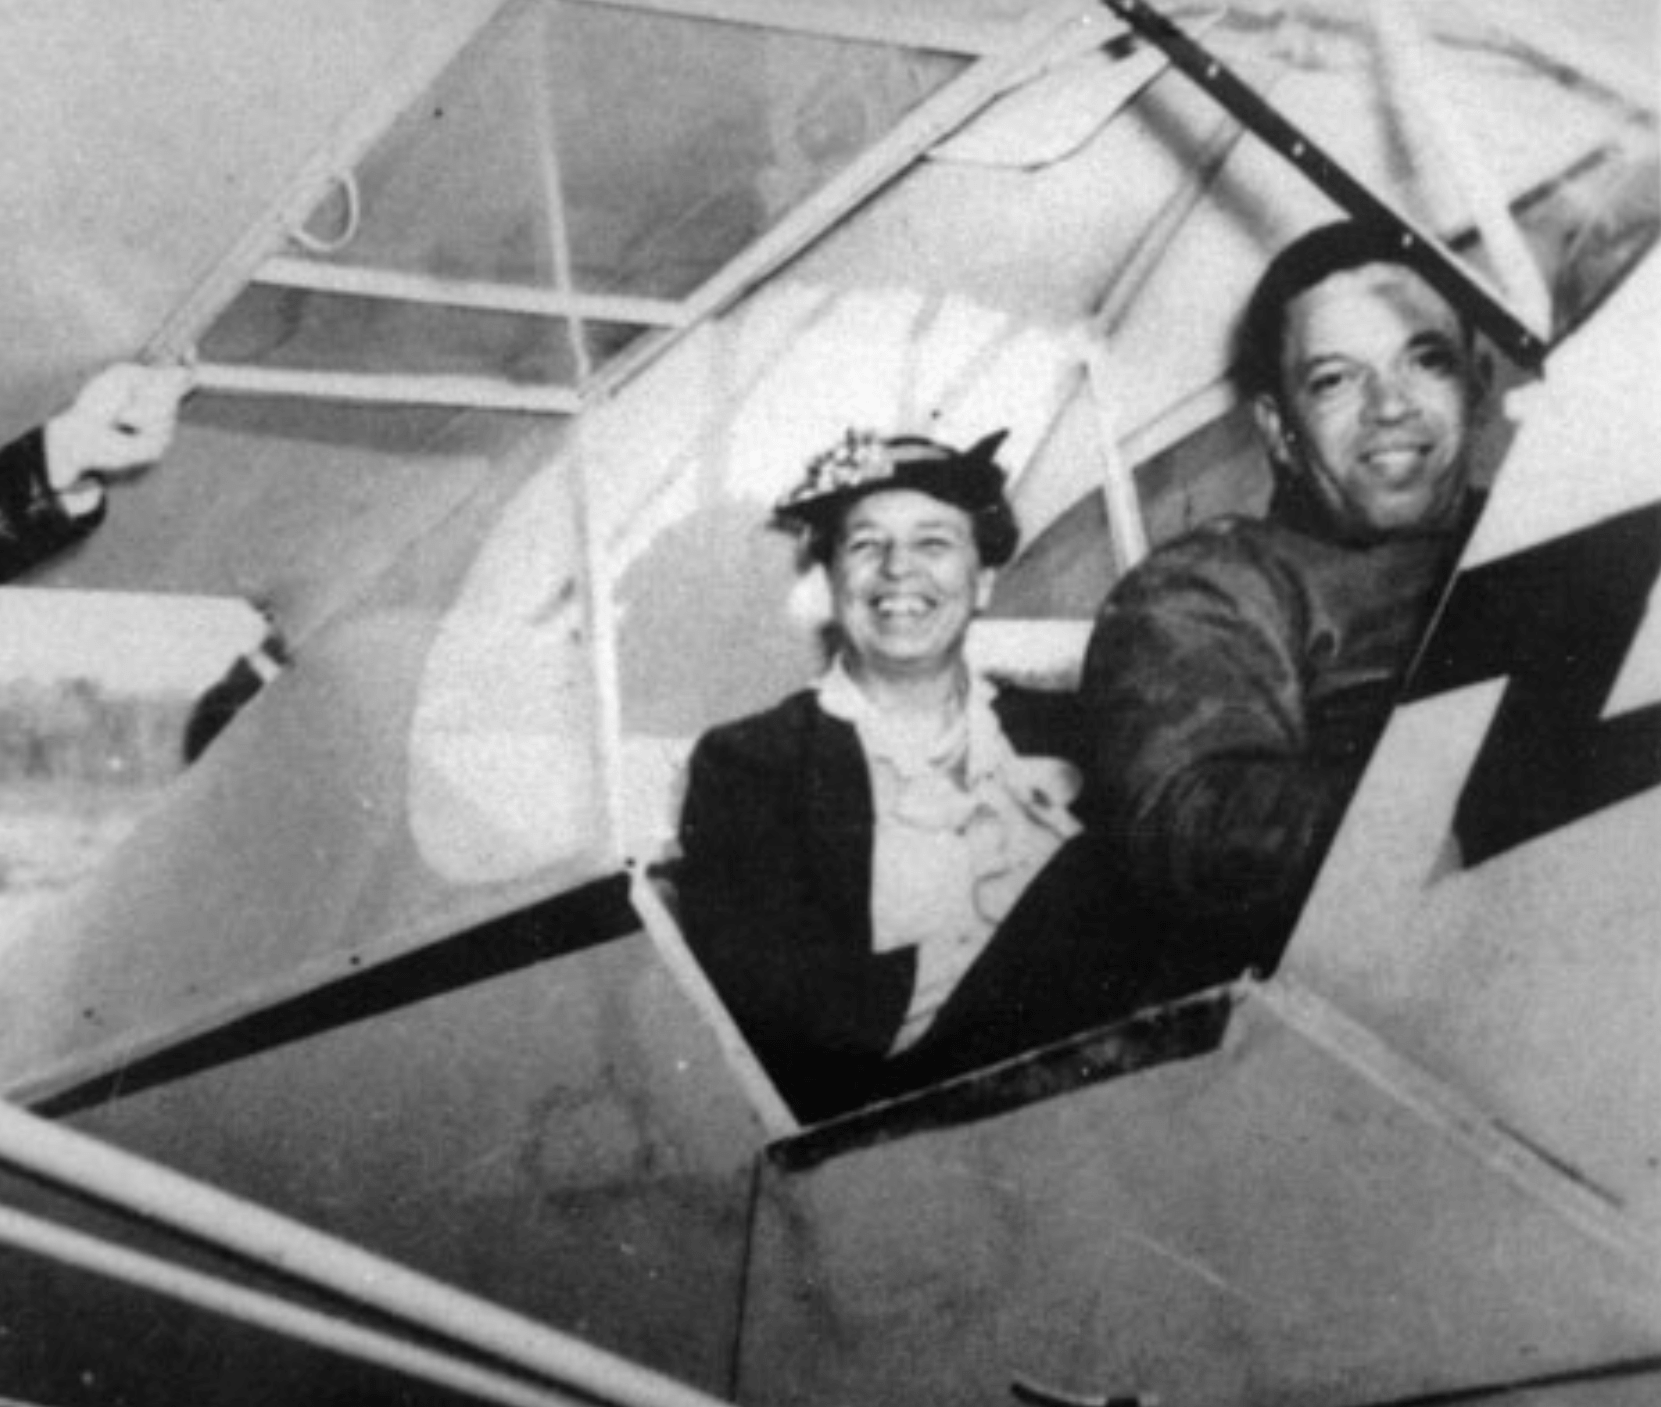 First Lady, Eleanor Roosevelt with pilot, Chief Anderson